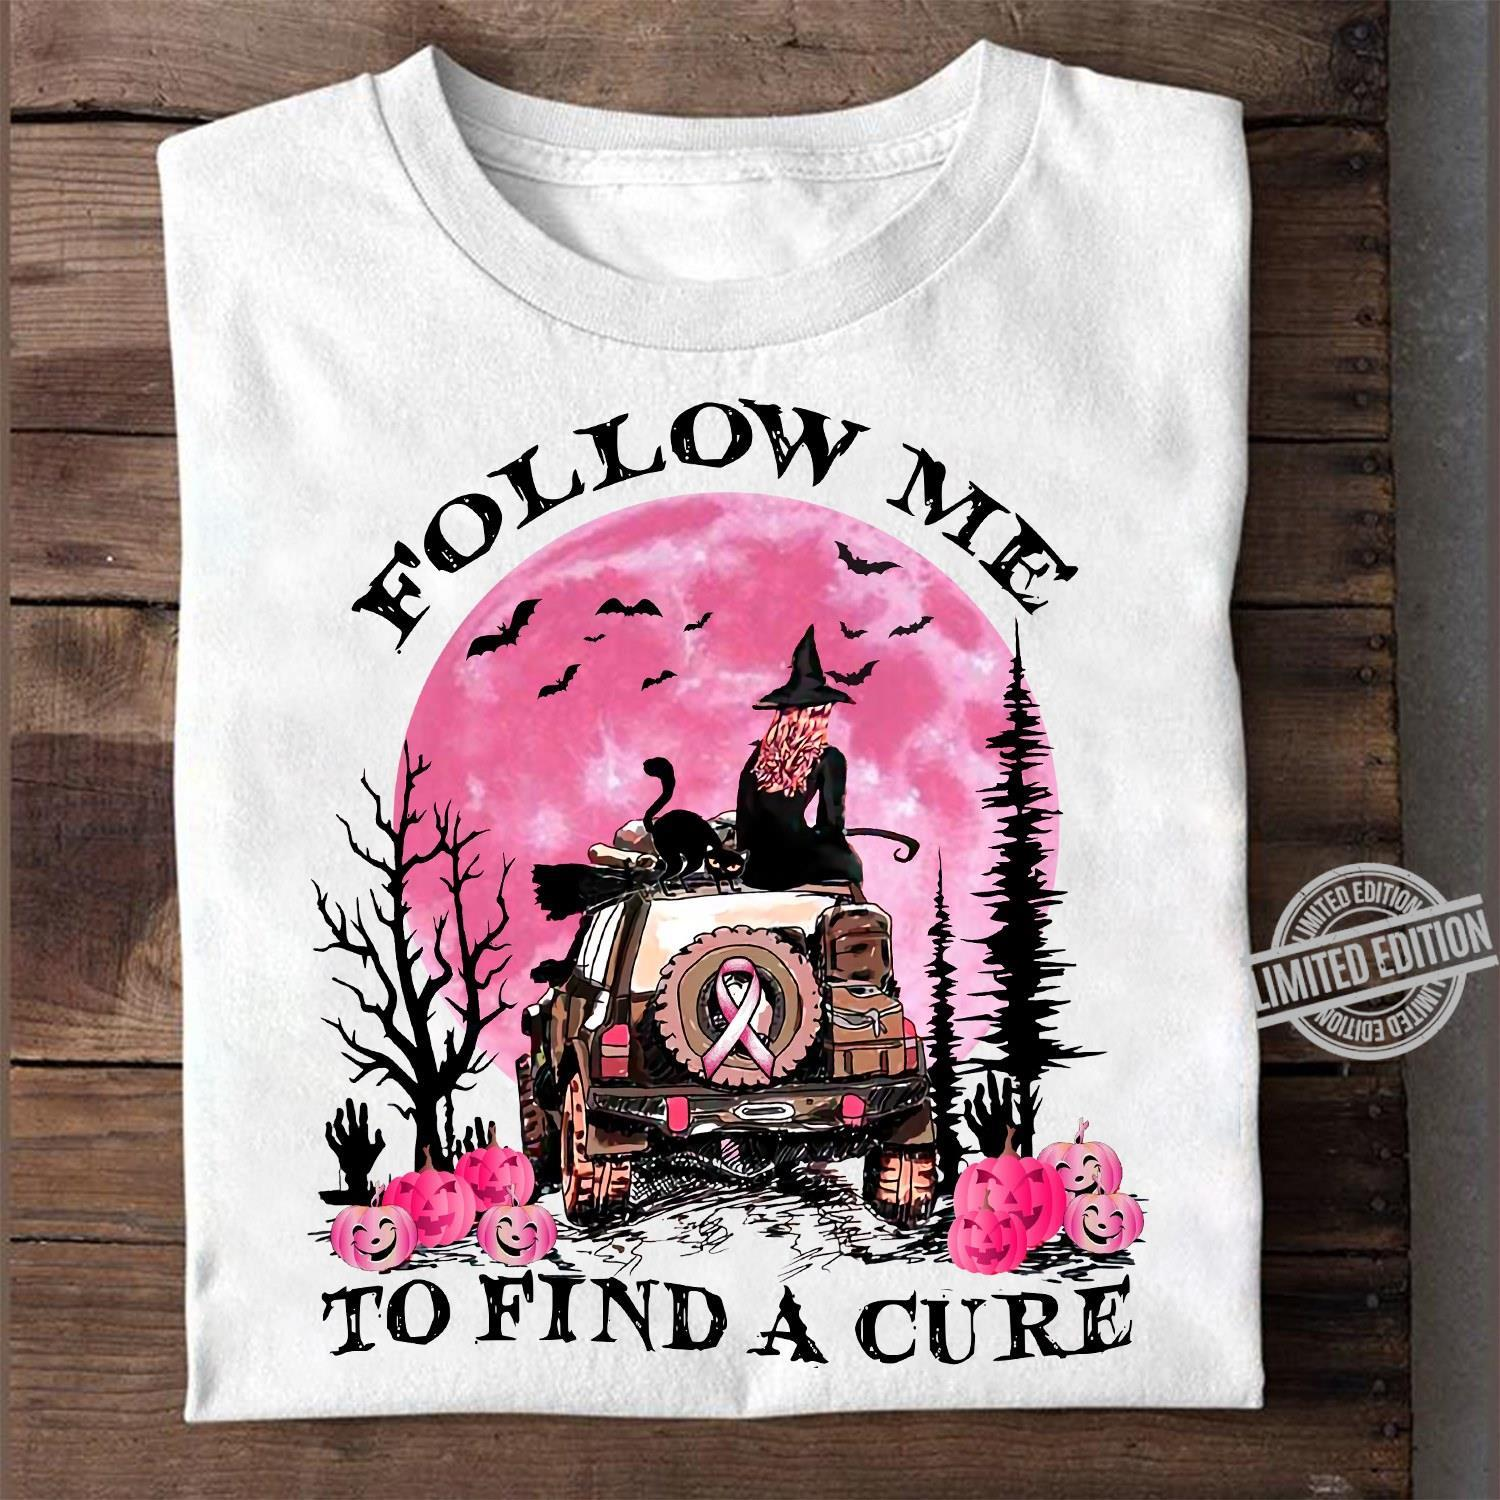 Follow Me To Find A Cure Shirt